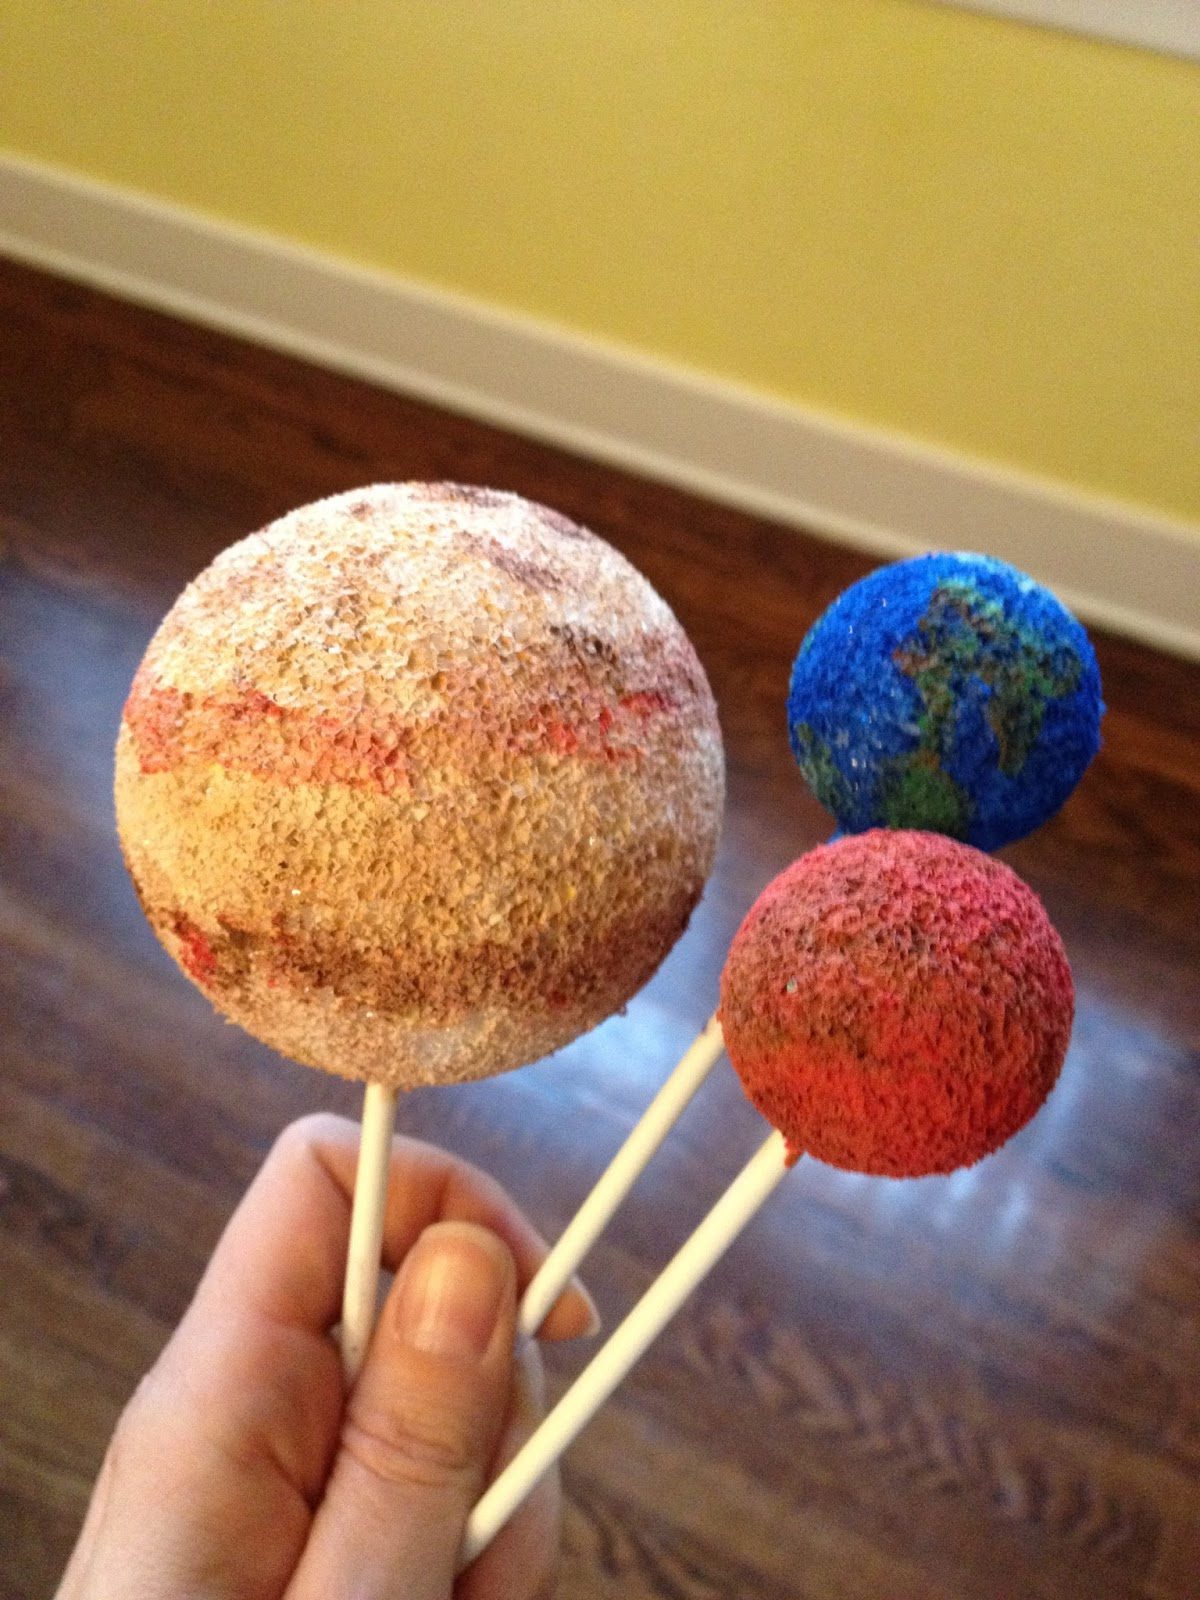 Earth Mars Planet Cake - Pics about space